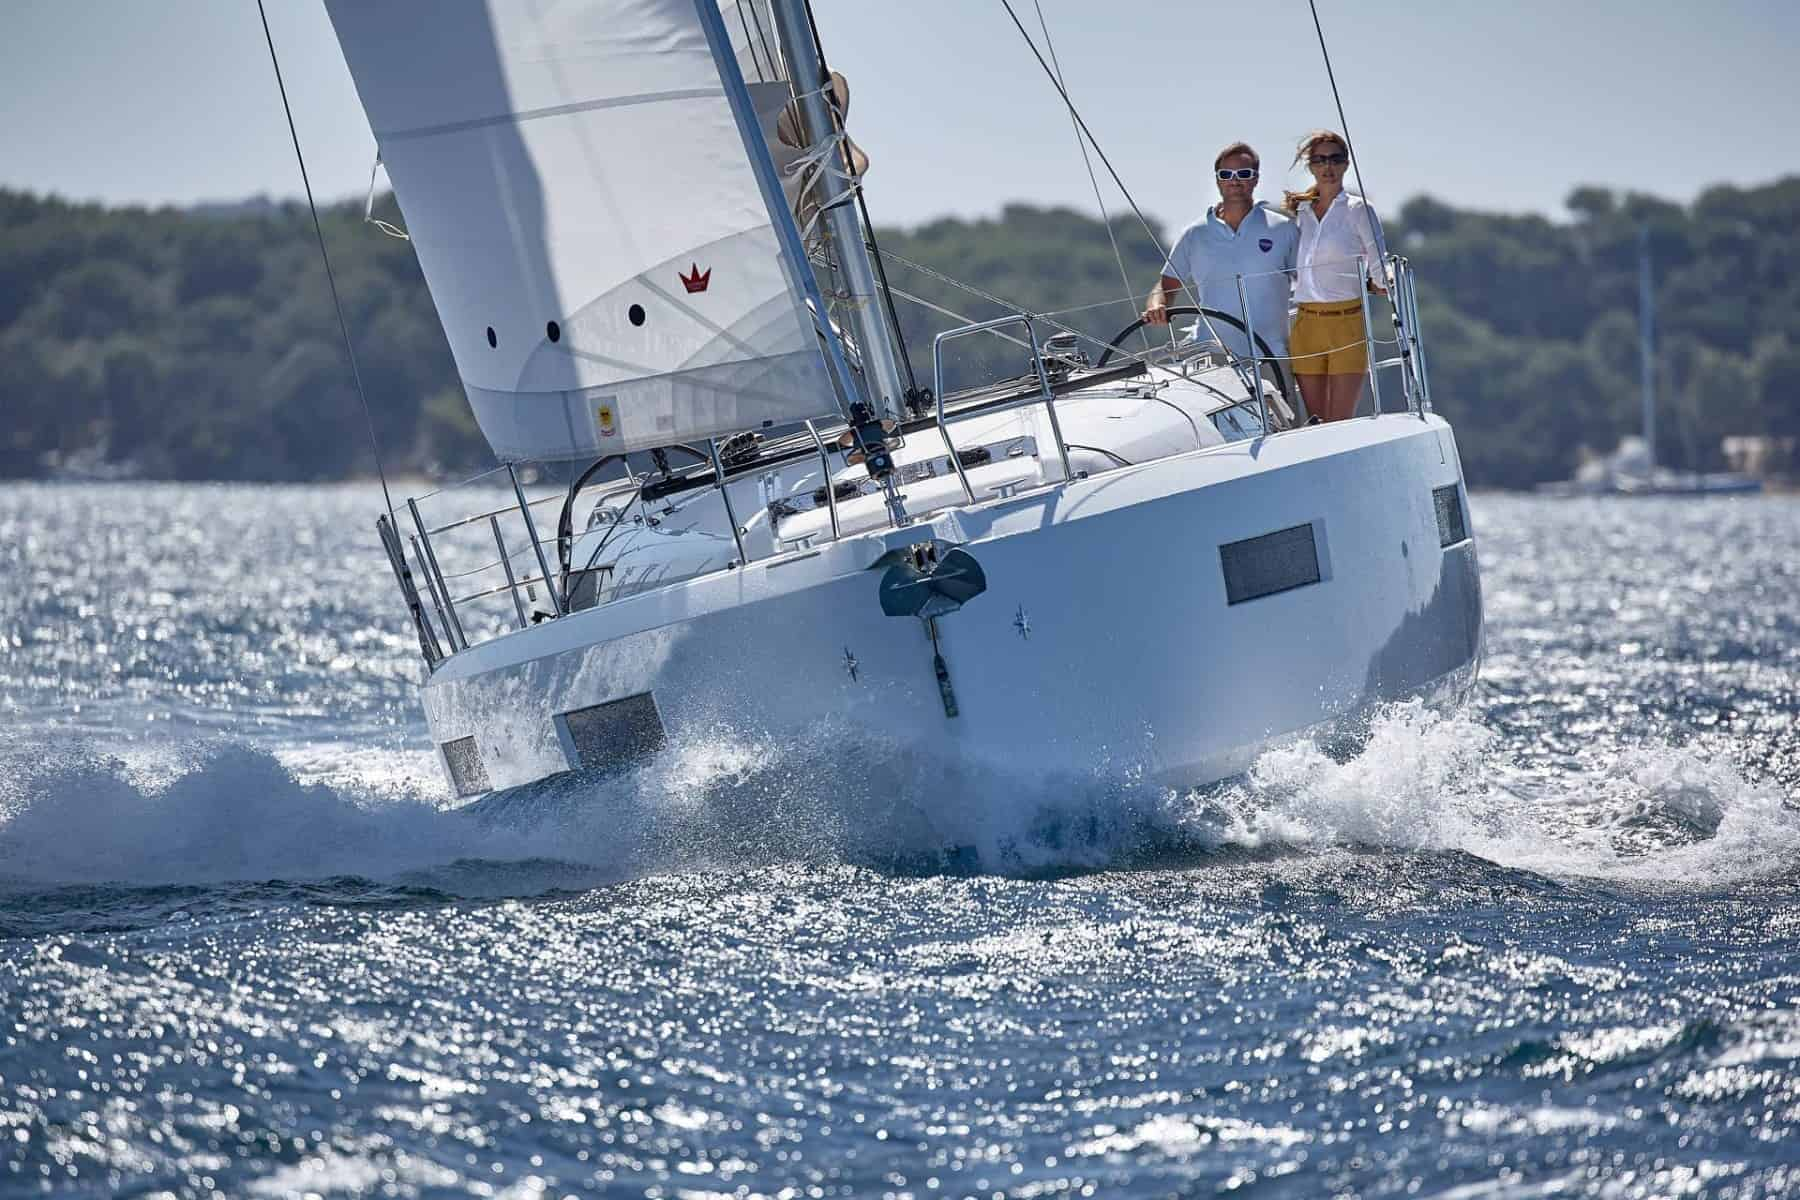 A Jeanneau Sun Odyssey 440 heading towards the camera with a man and a woman on deck